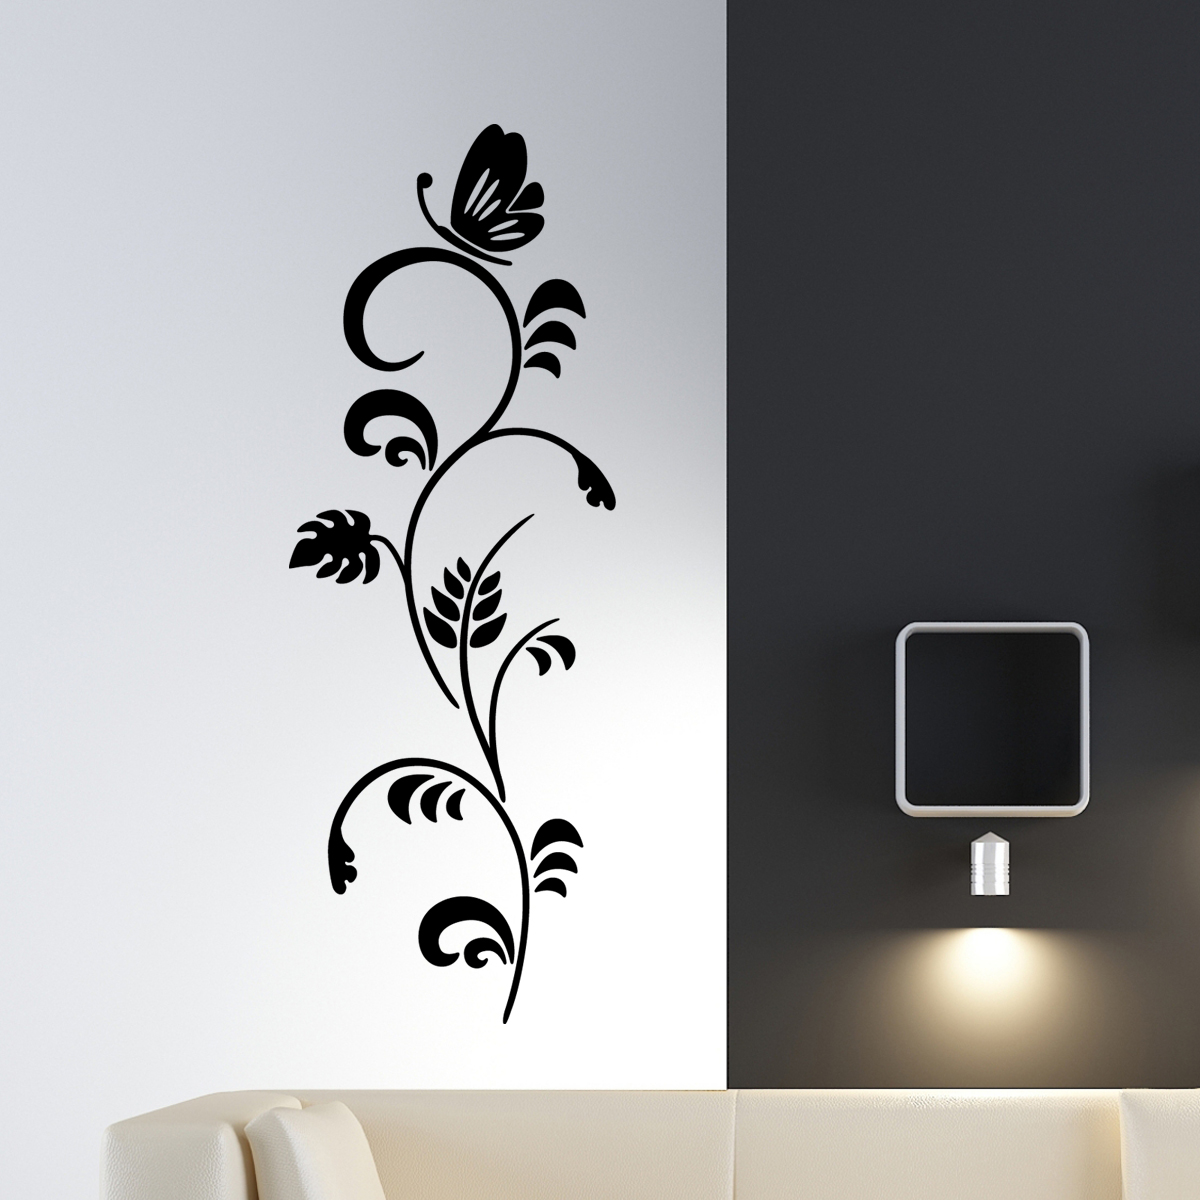 Décoration Murale Branches Sticker Mural Branche And Papillon Stickers Fleurs